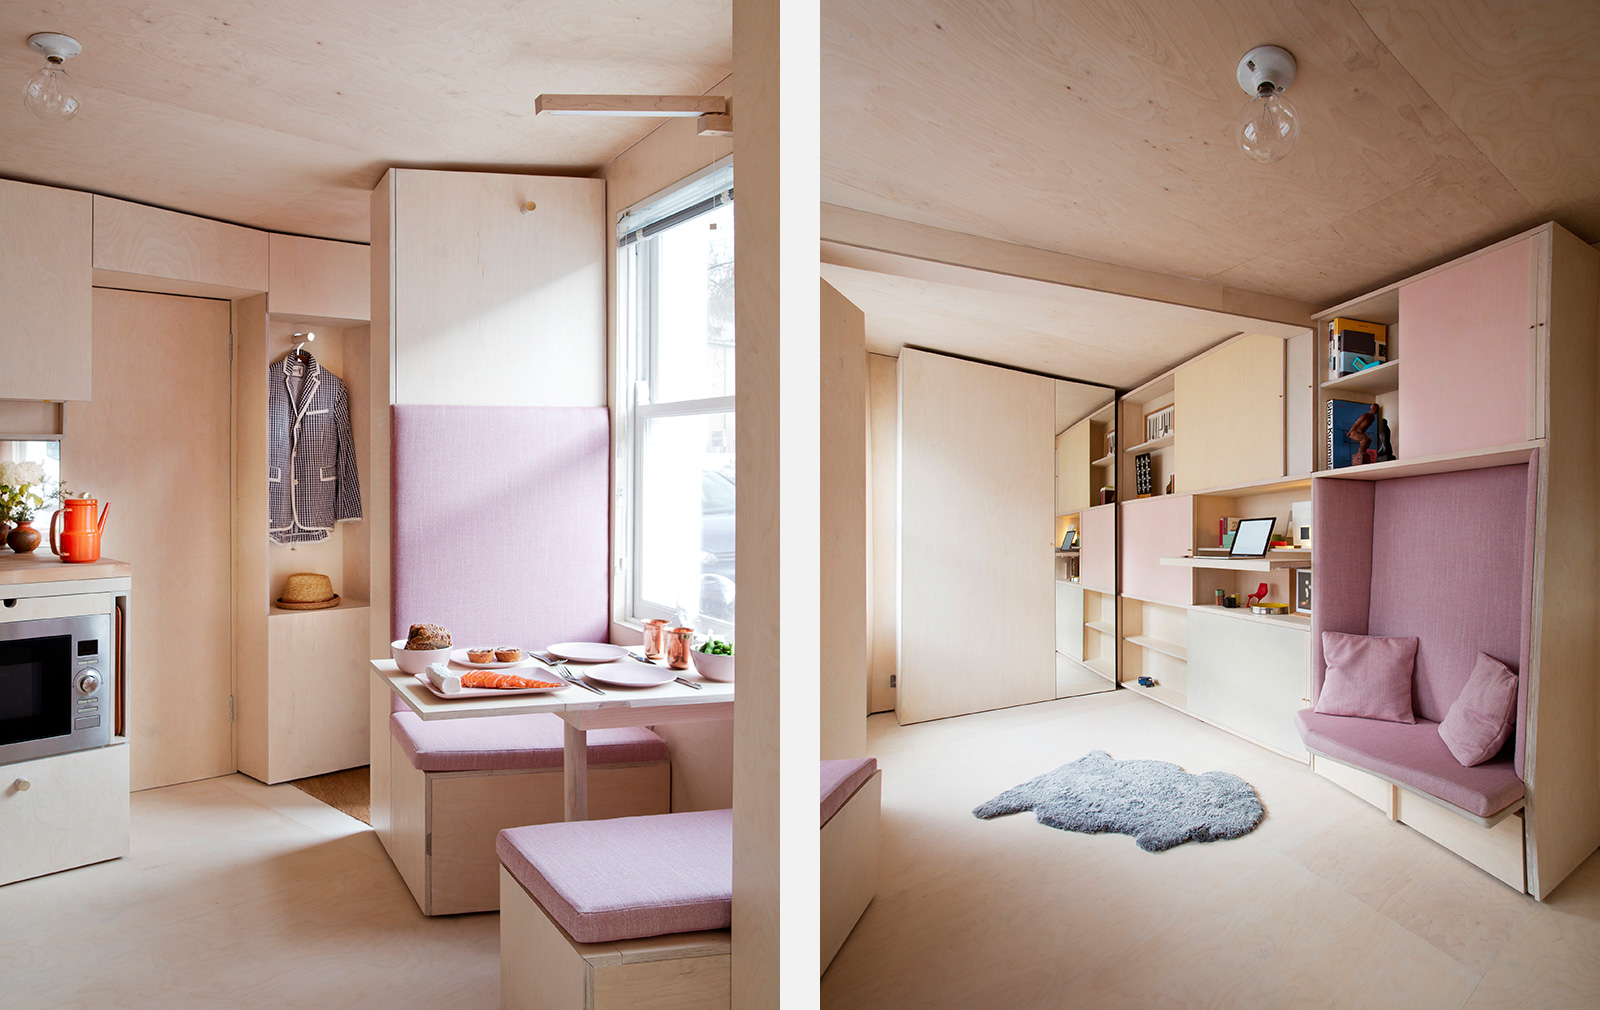 Micro home apartment designed by Courtesy of Studiomama